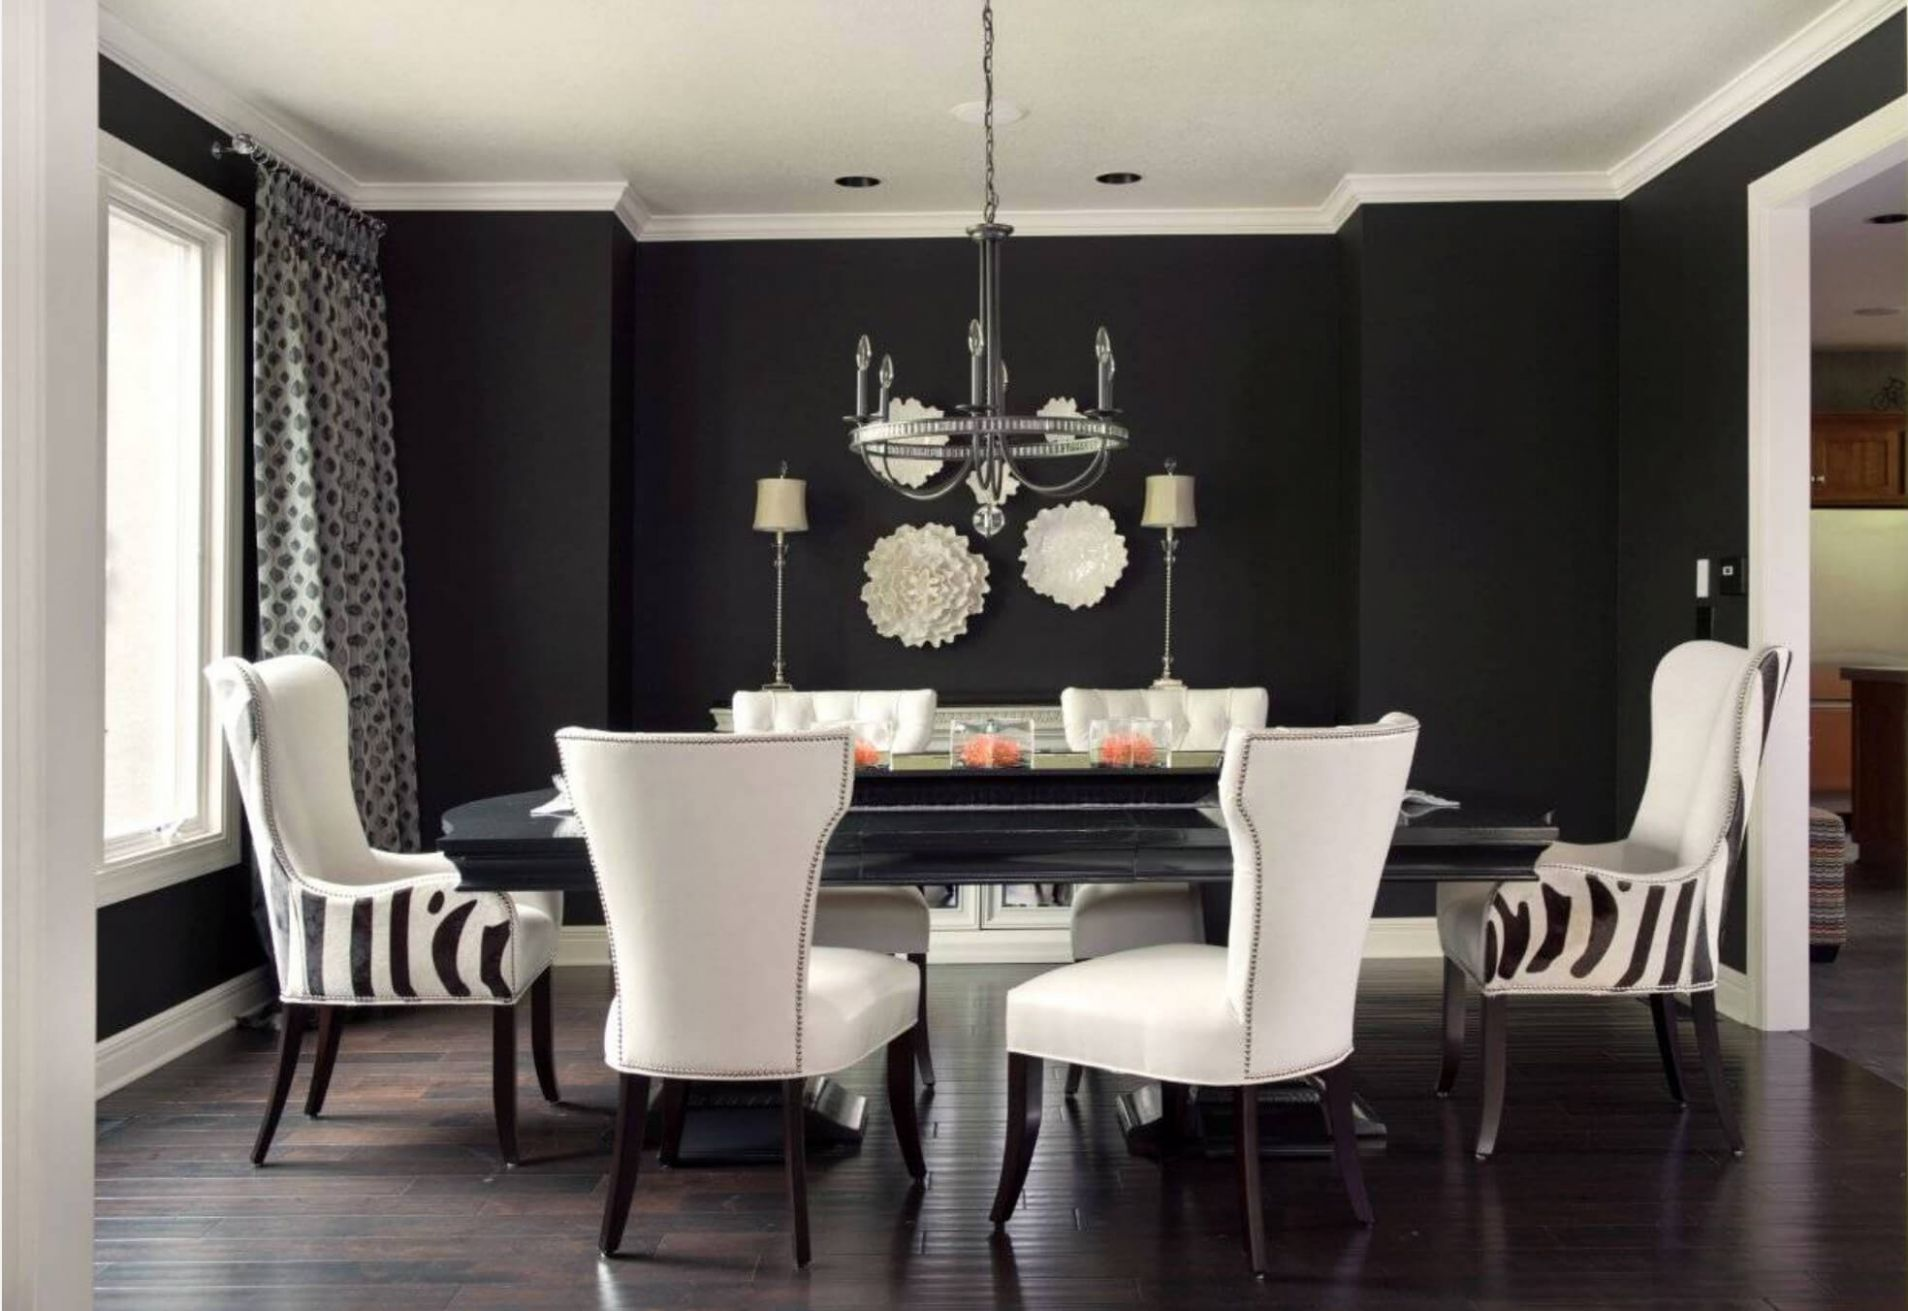 9 Creative Ideas for Dining Room Walls | Freshome